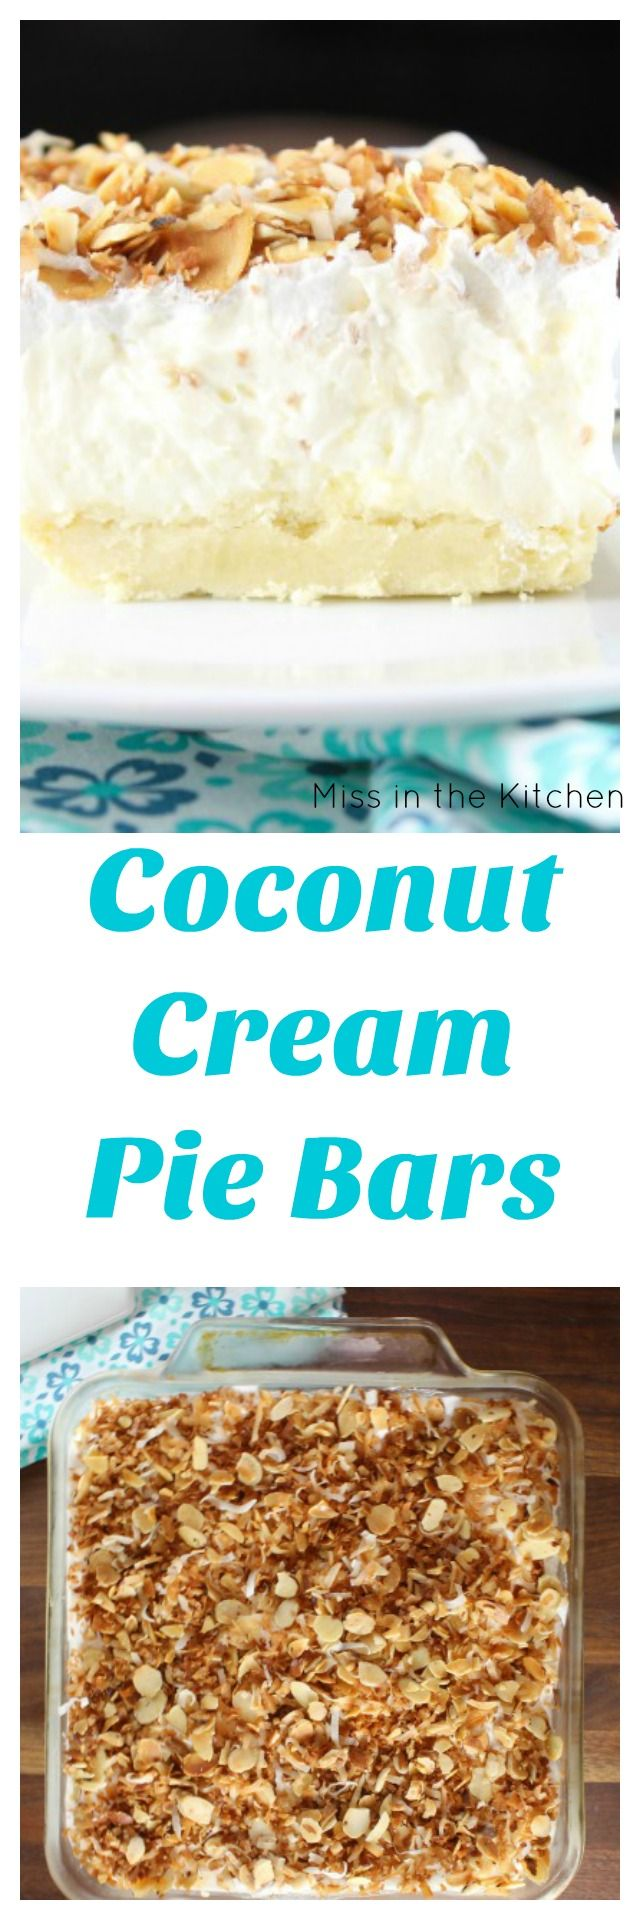 Coconut Cream Pie Bars Recipe found at MissintheKitchen.com